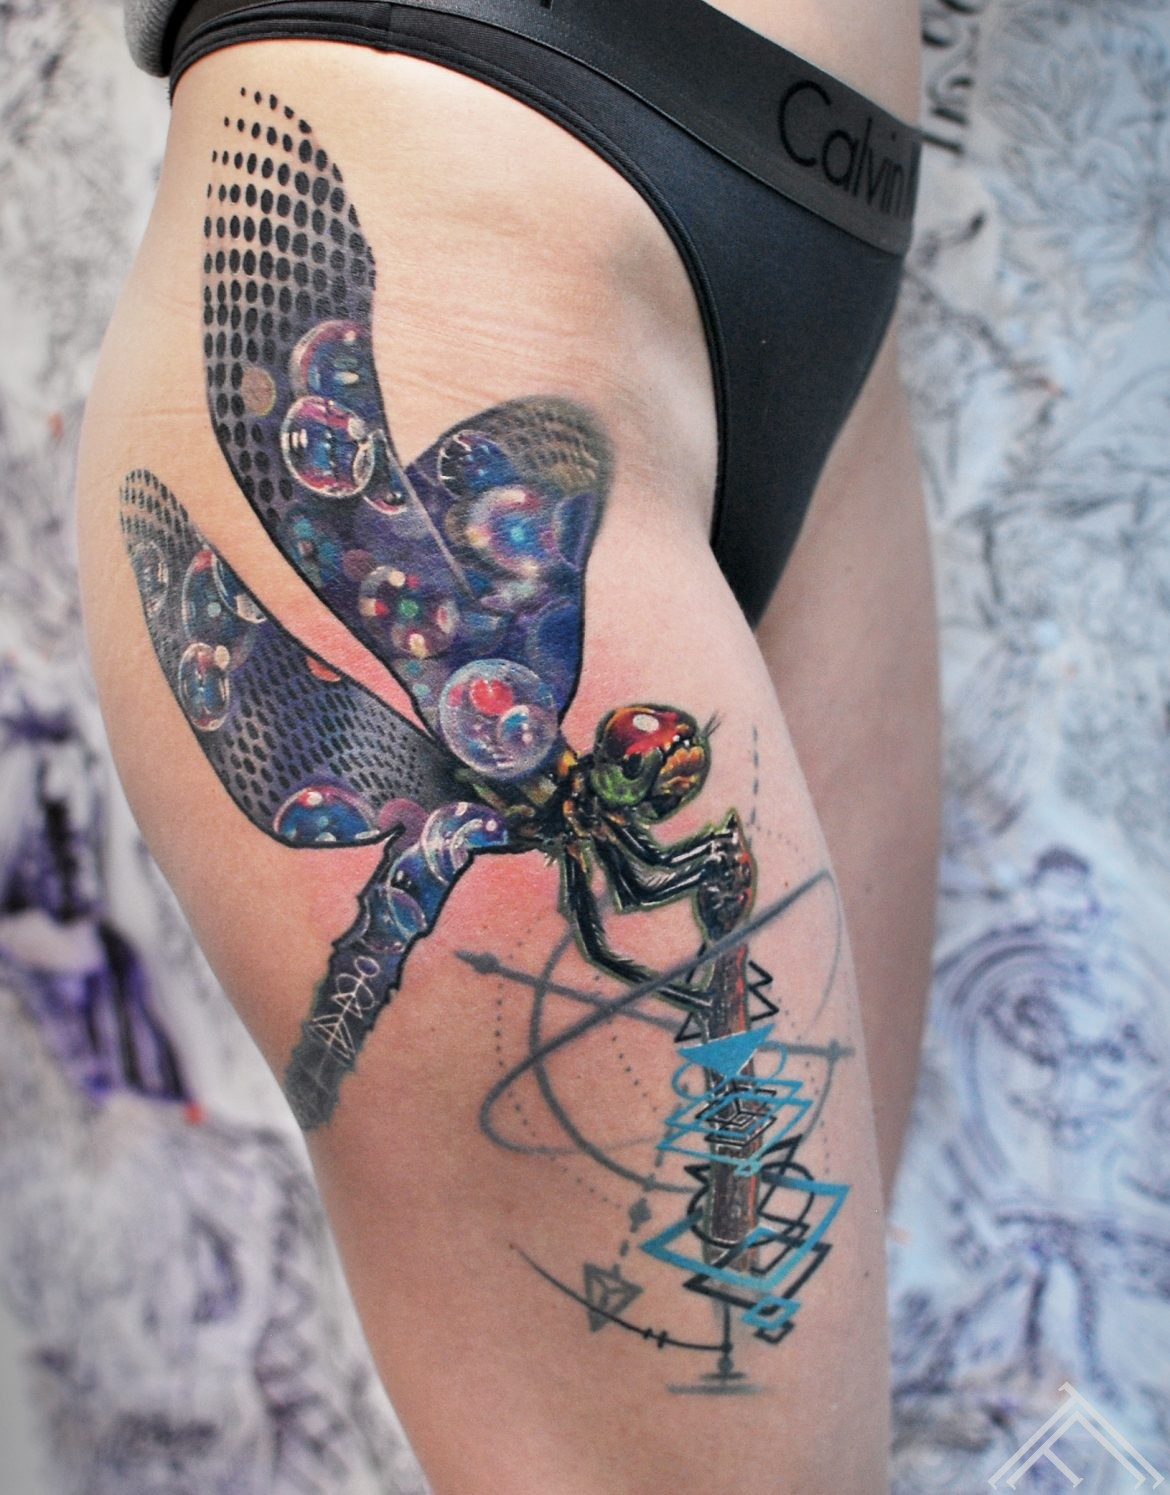 dragonfly-spare-bubble-burbuli-geometric-graphic-art-maksla-tattoo-tetovejums-tattoofrequency-riga-marispavlo-healed-fb